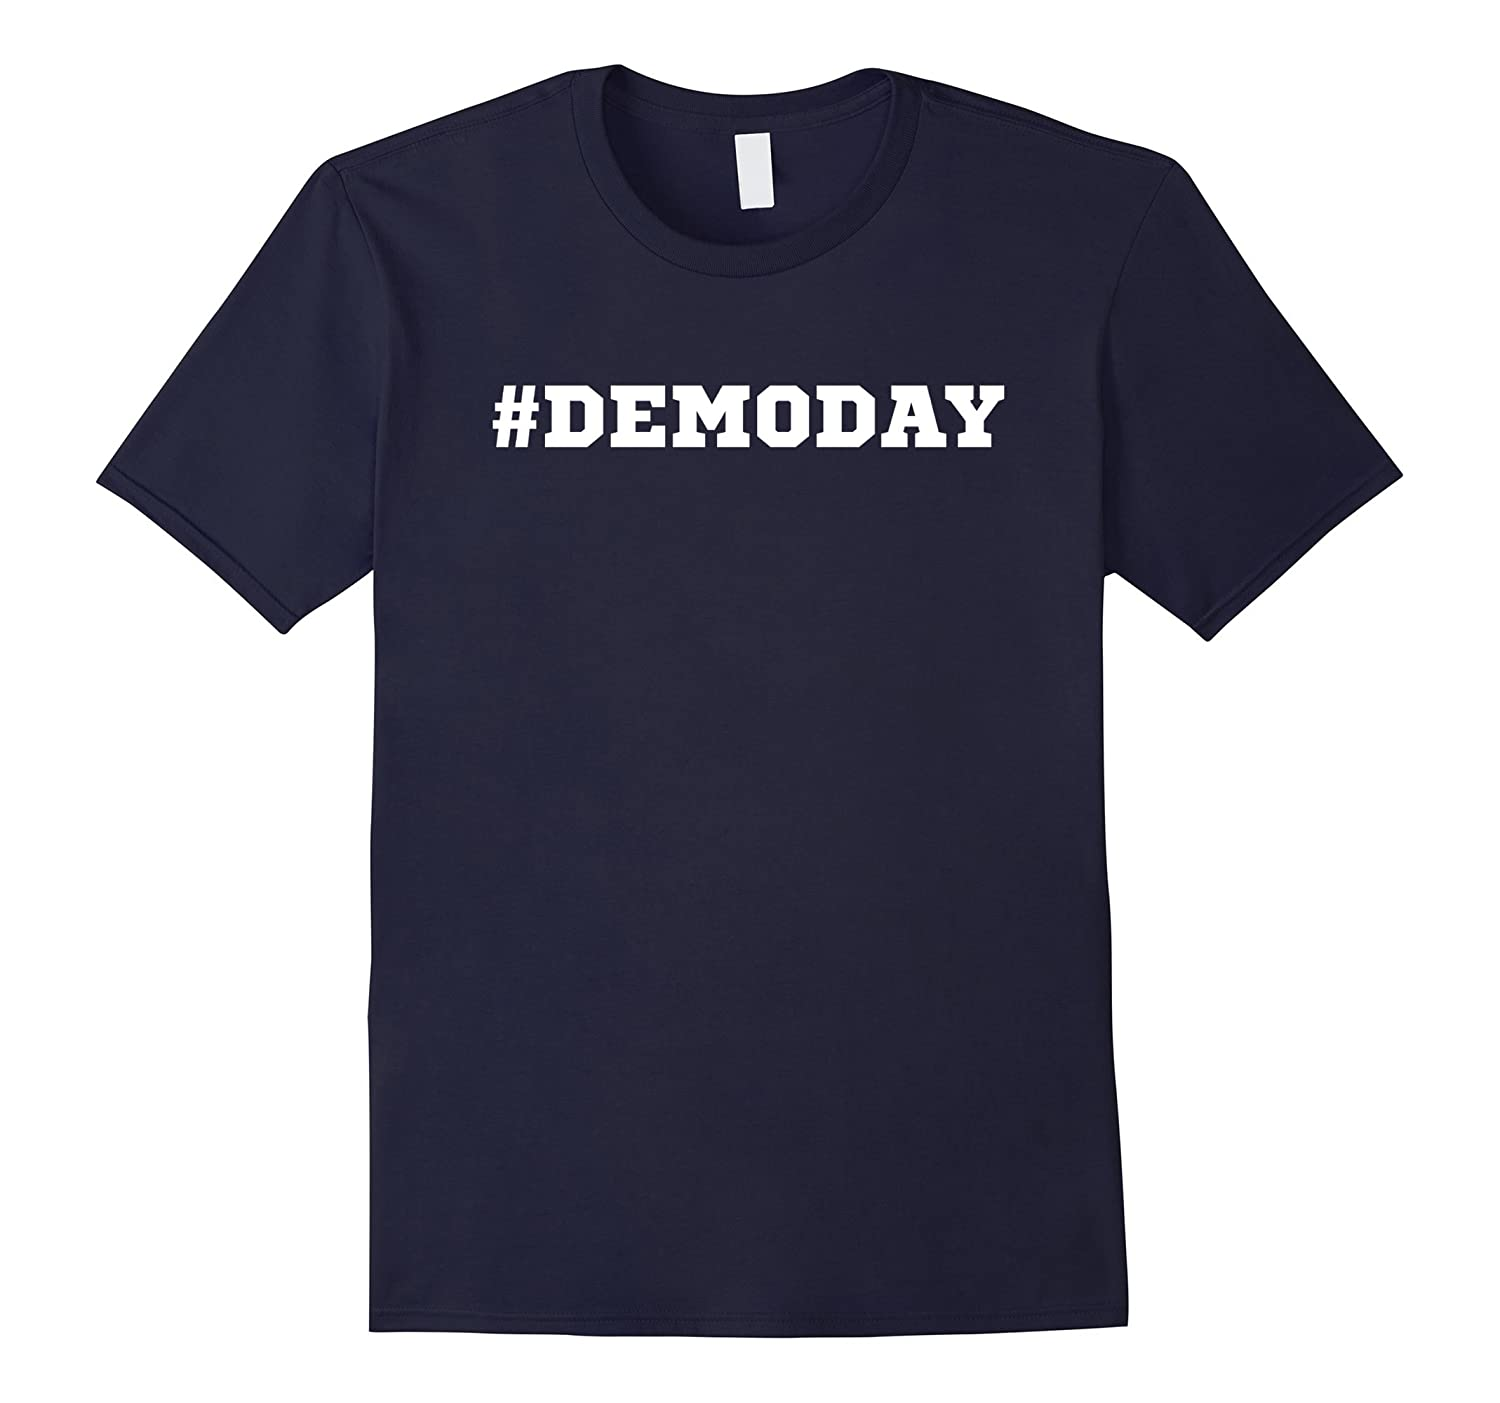 #Demoday, House Flipper, Fixer, Demo Day TShirt-Rose